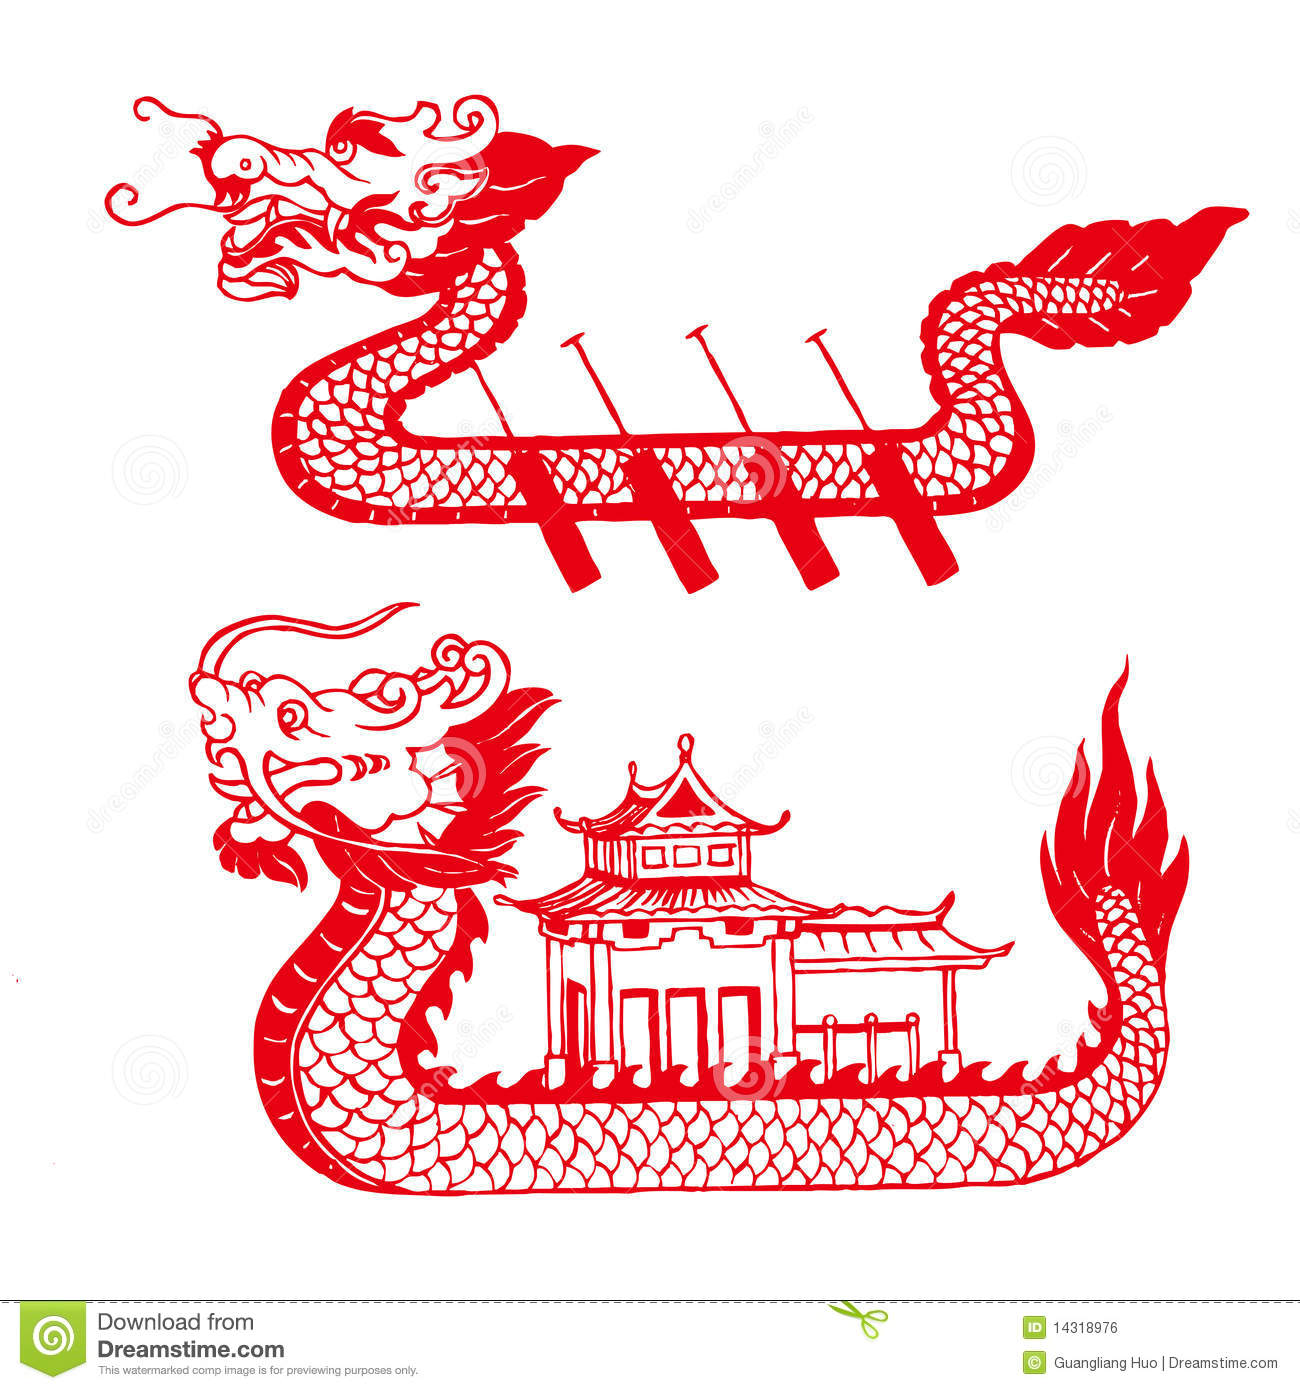 Dragon Boat Royalty Free Stock Image - Image: 14318976